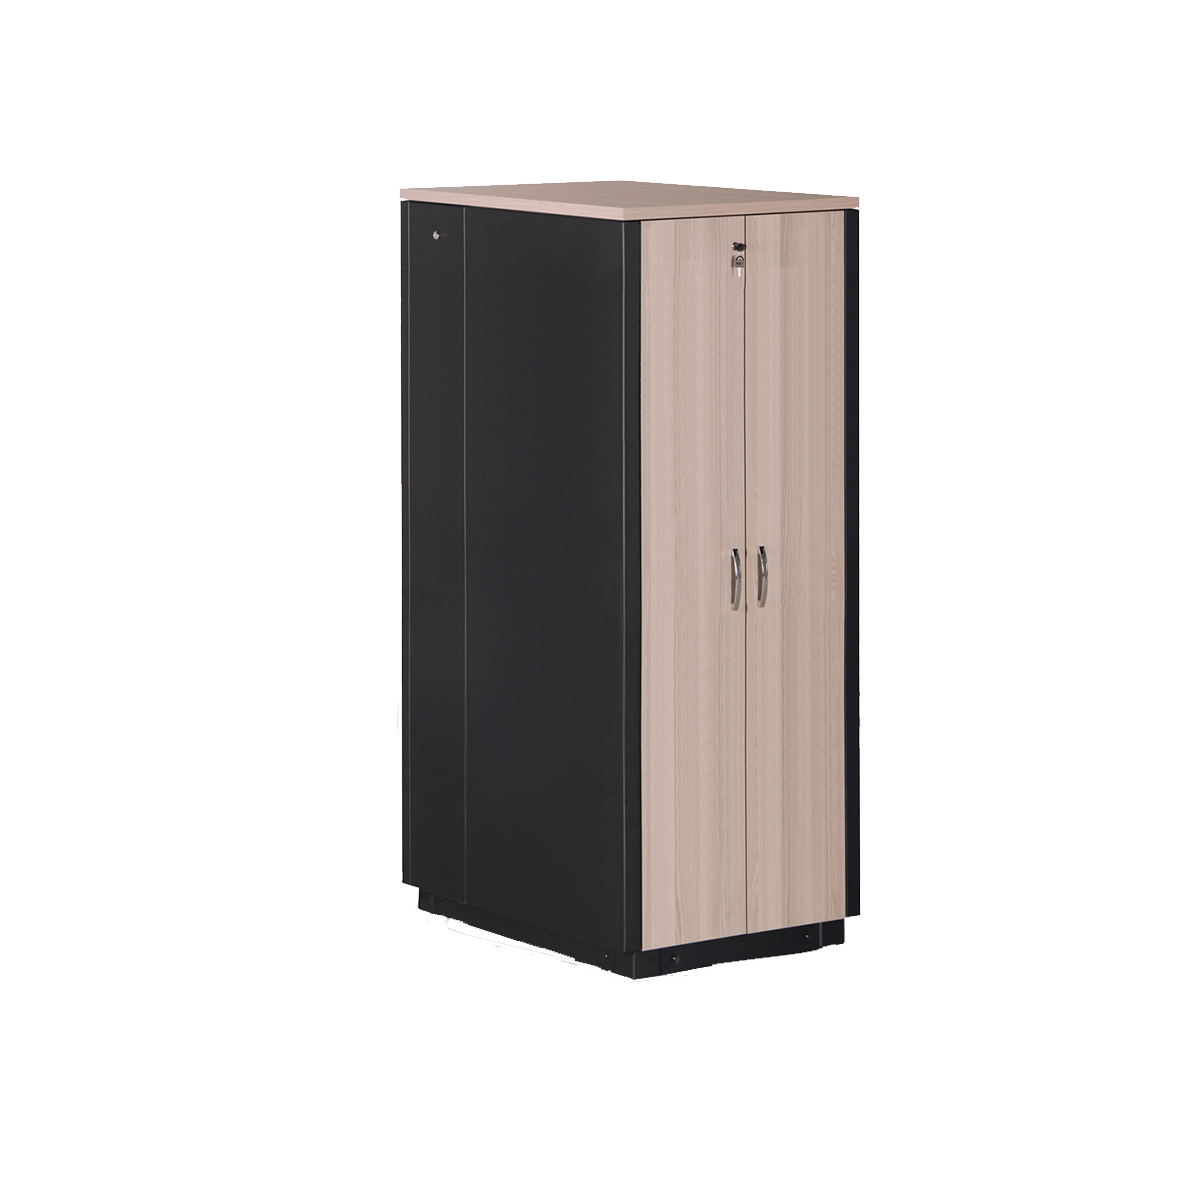 Soundproof cabinets